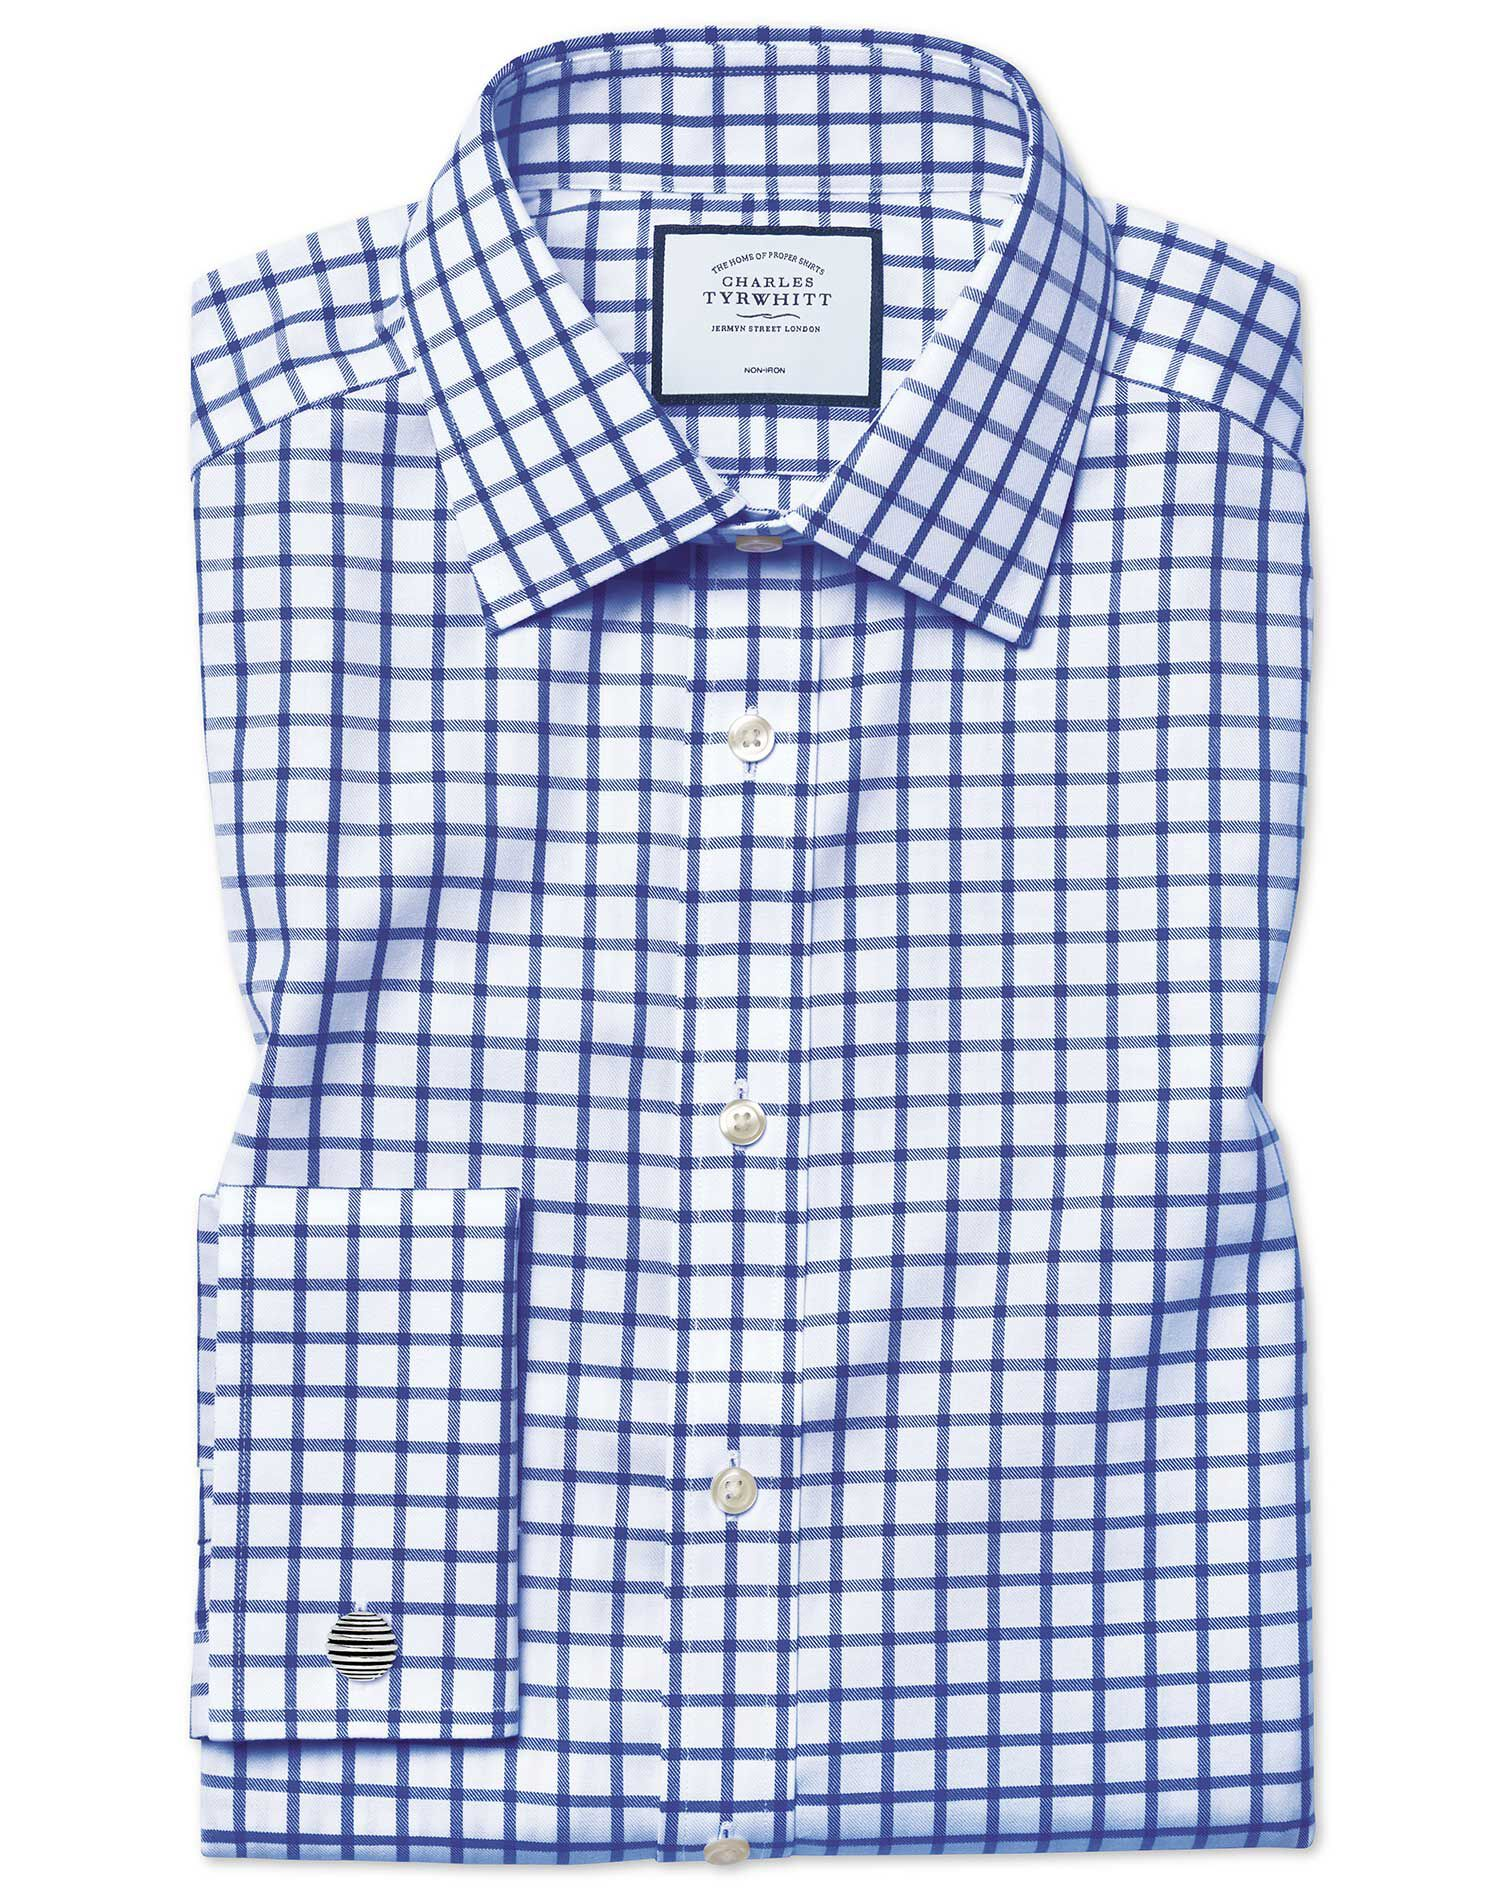 Extra Slim Fit Non-Iron Twill Grid Check Royal Blue Cotton Formal Shirt Double Cuff Size 14.5/33 by